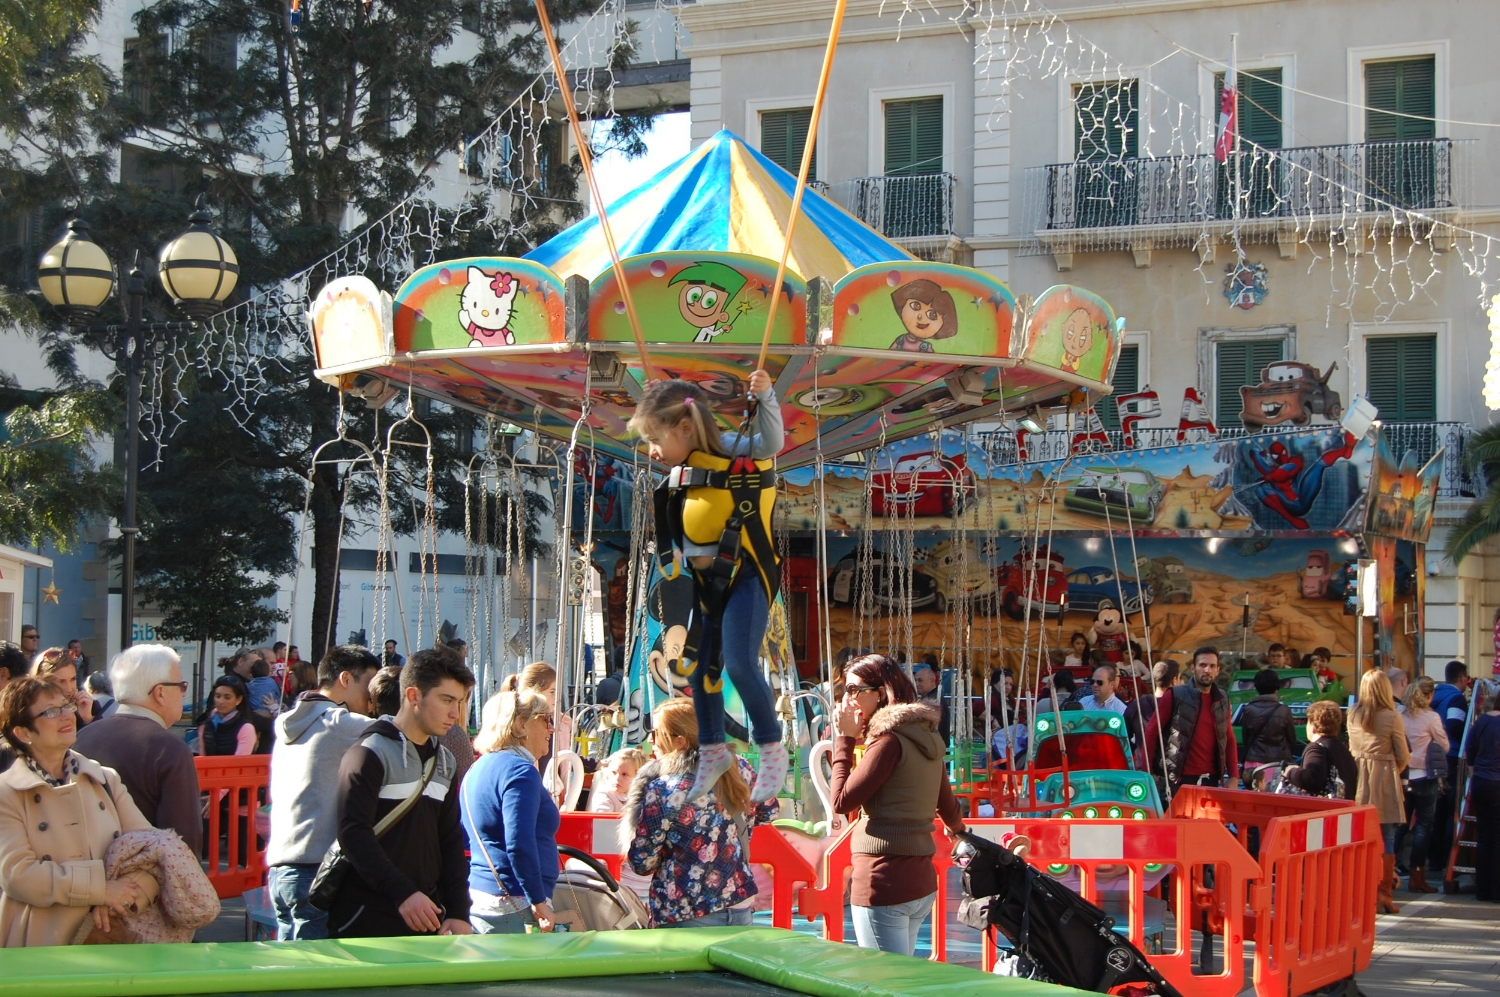 John Mackintosh Square, 12.00-19.00 - Rides and slides for little ones.